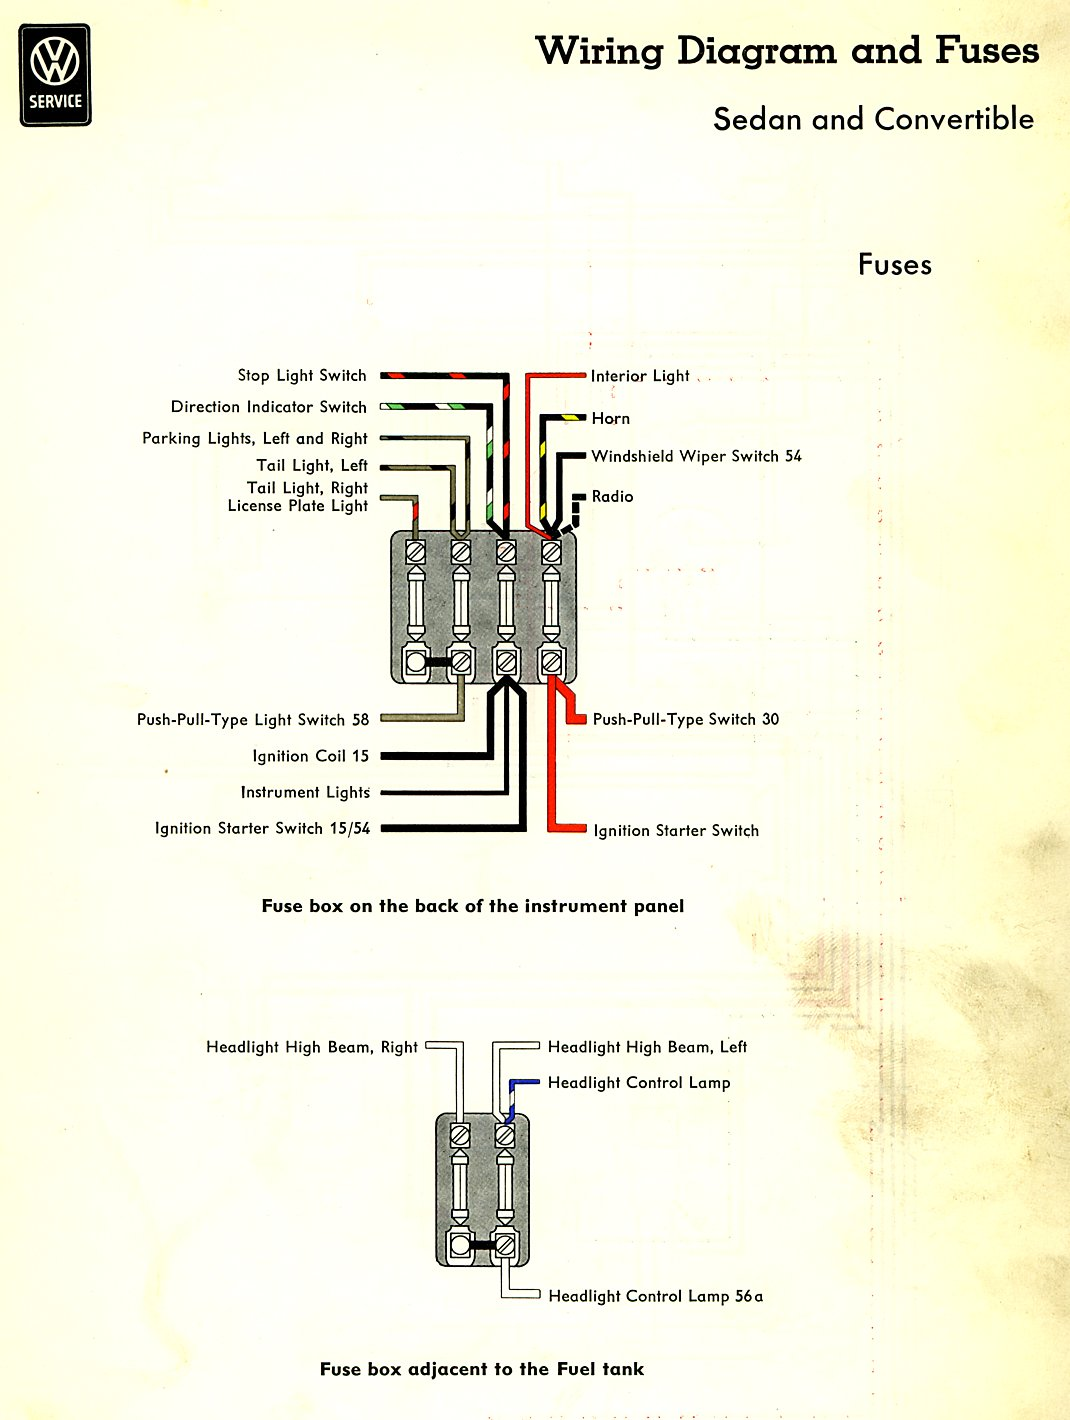 Fuse Block Diagram For 1967 Mustang 1973 Box Wiring Library